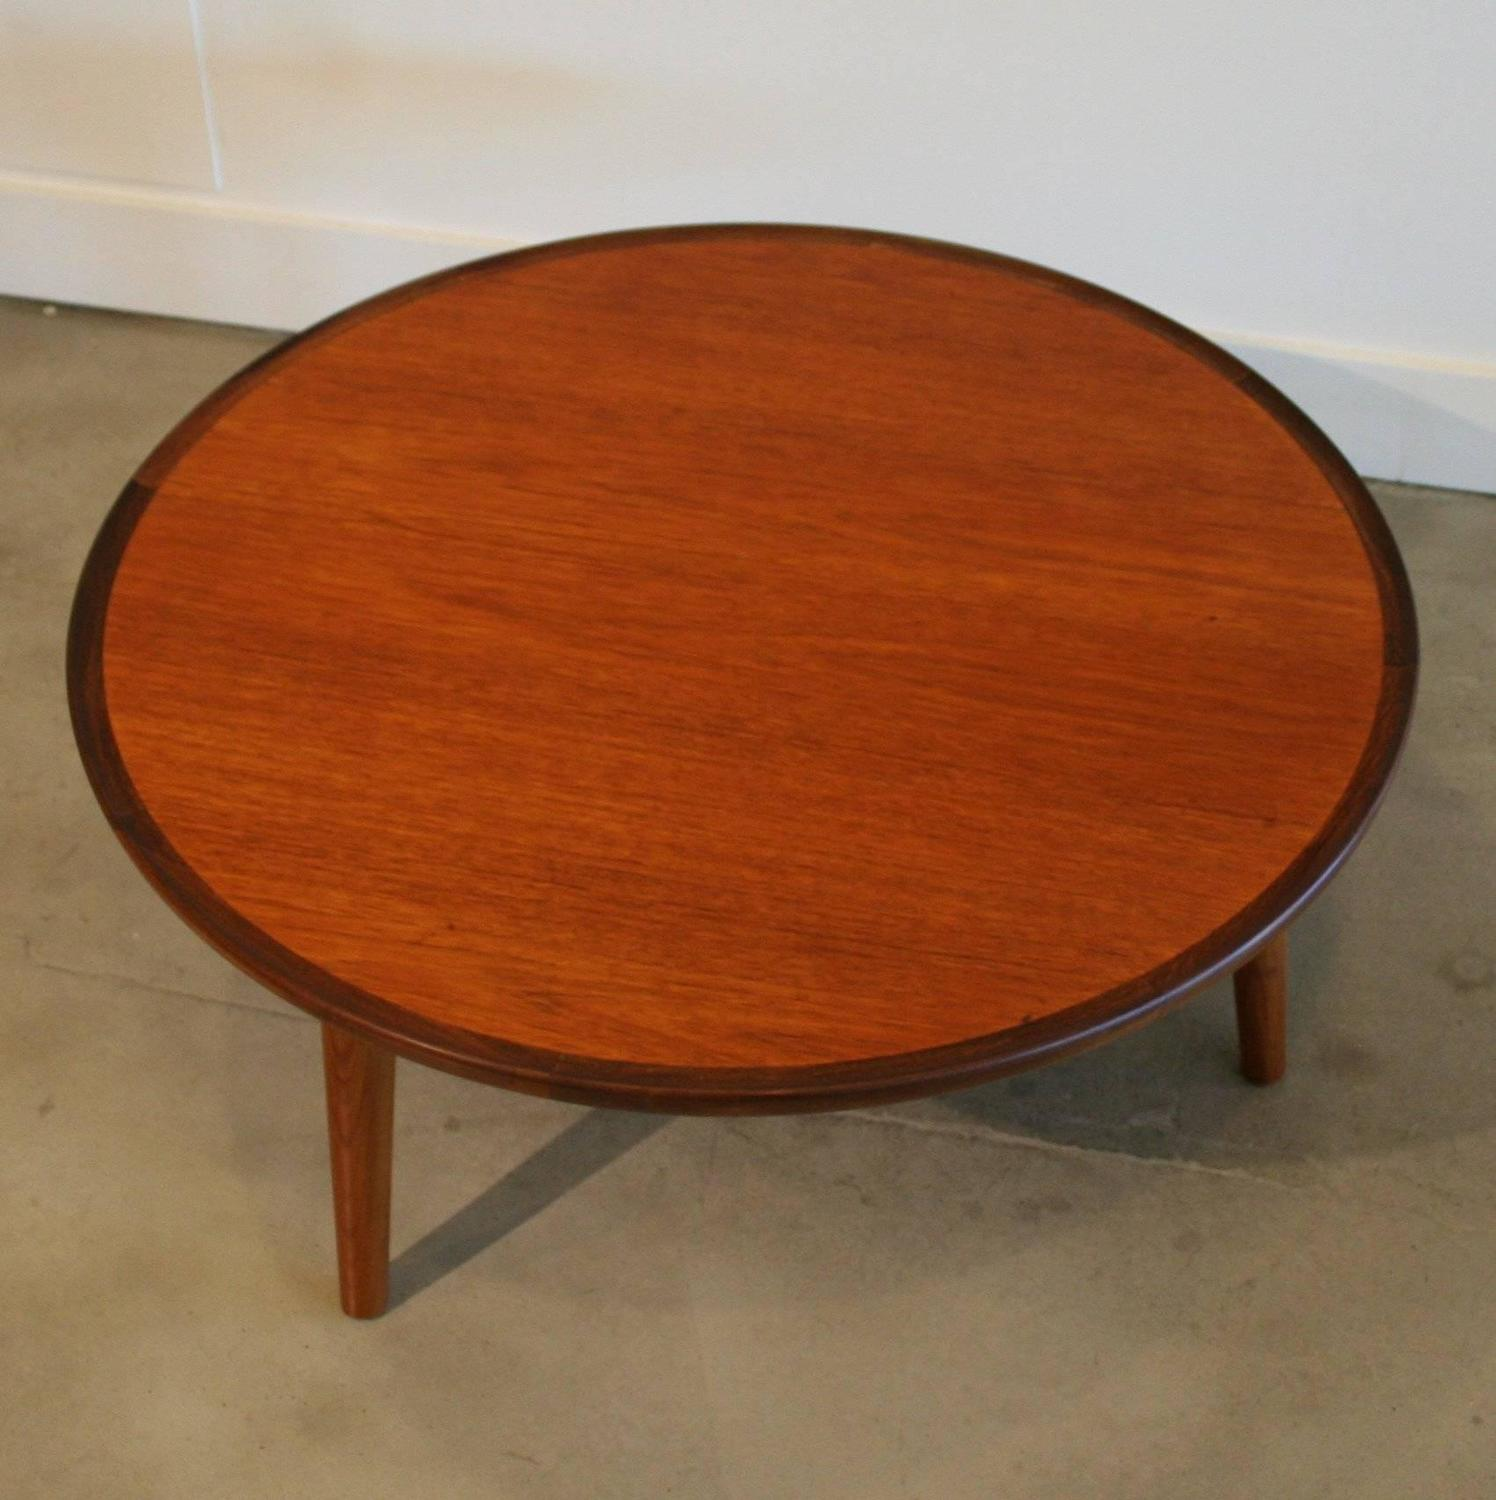 vintage danish teak round coffee table by peter hvidt at